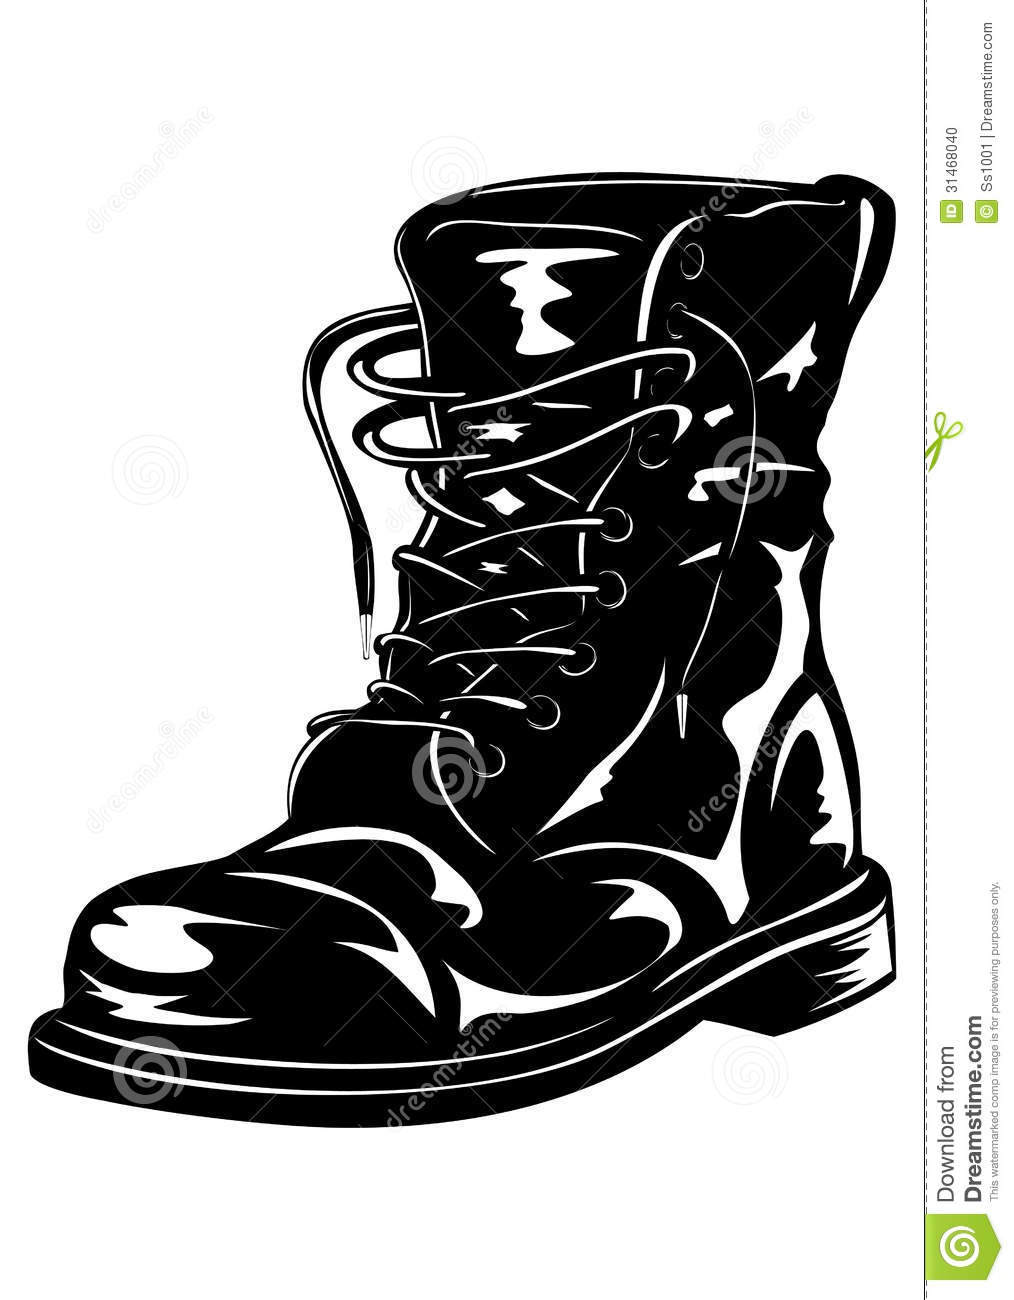 clipart of military boots - photo #14